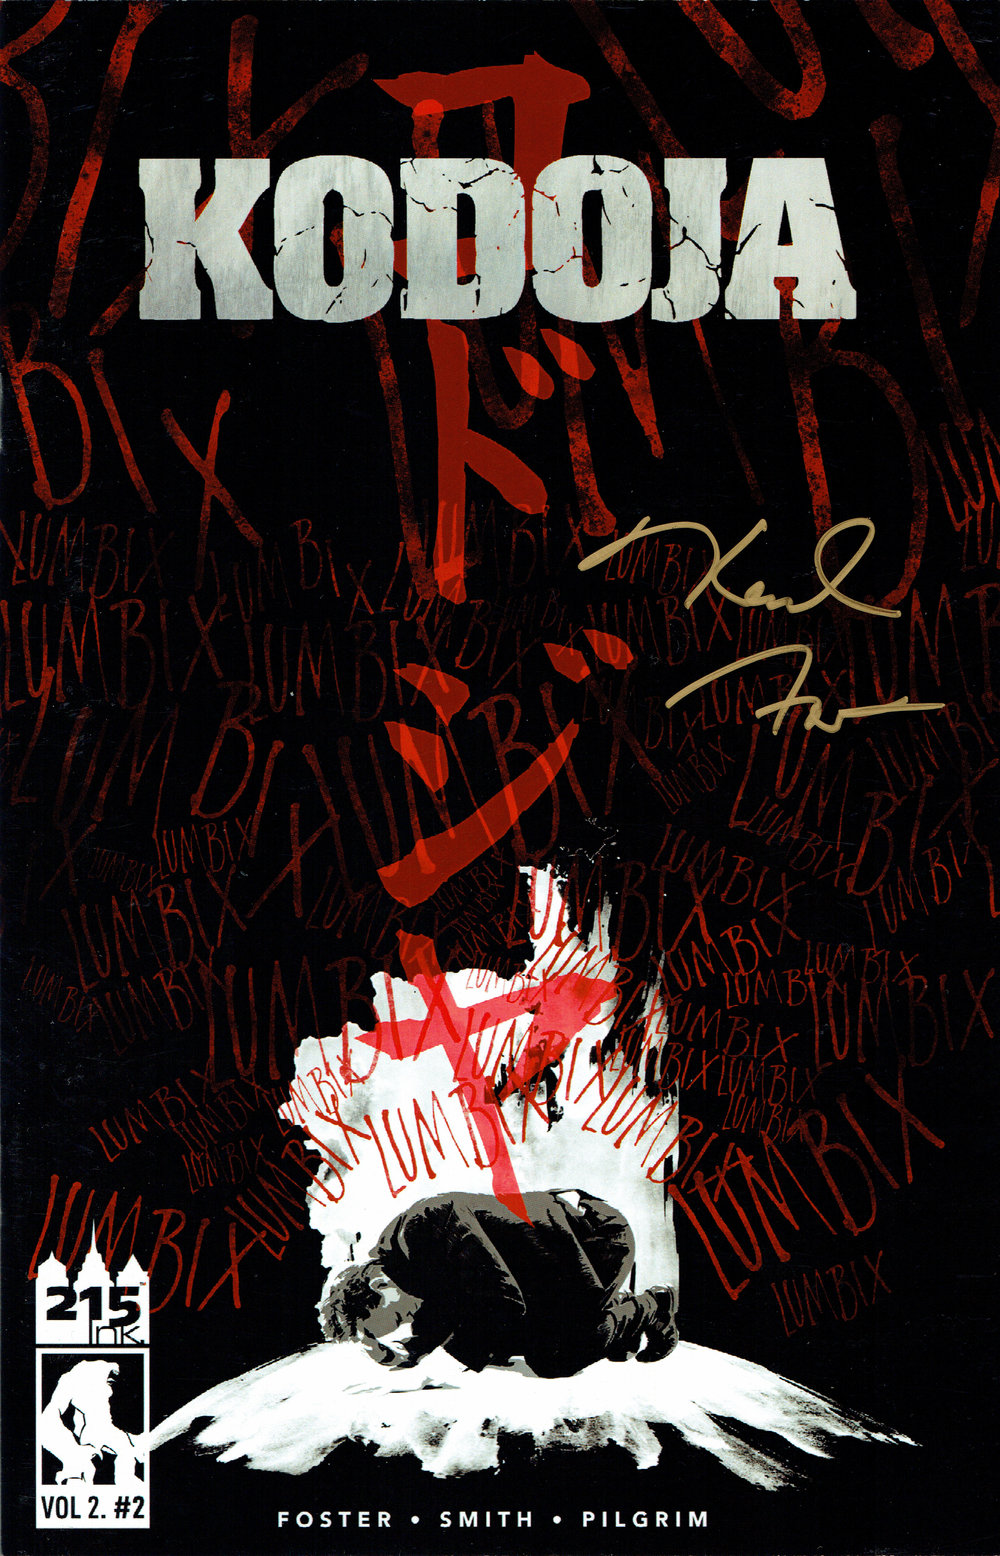 Kodoja vol.2 #1 from 215 Ink.